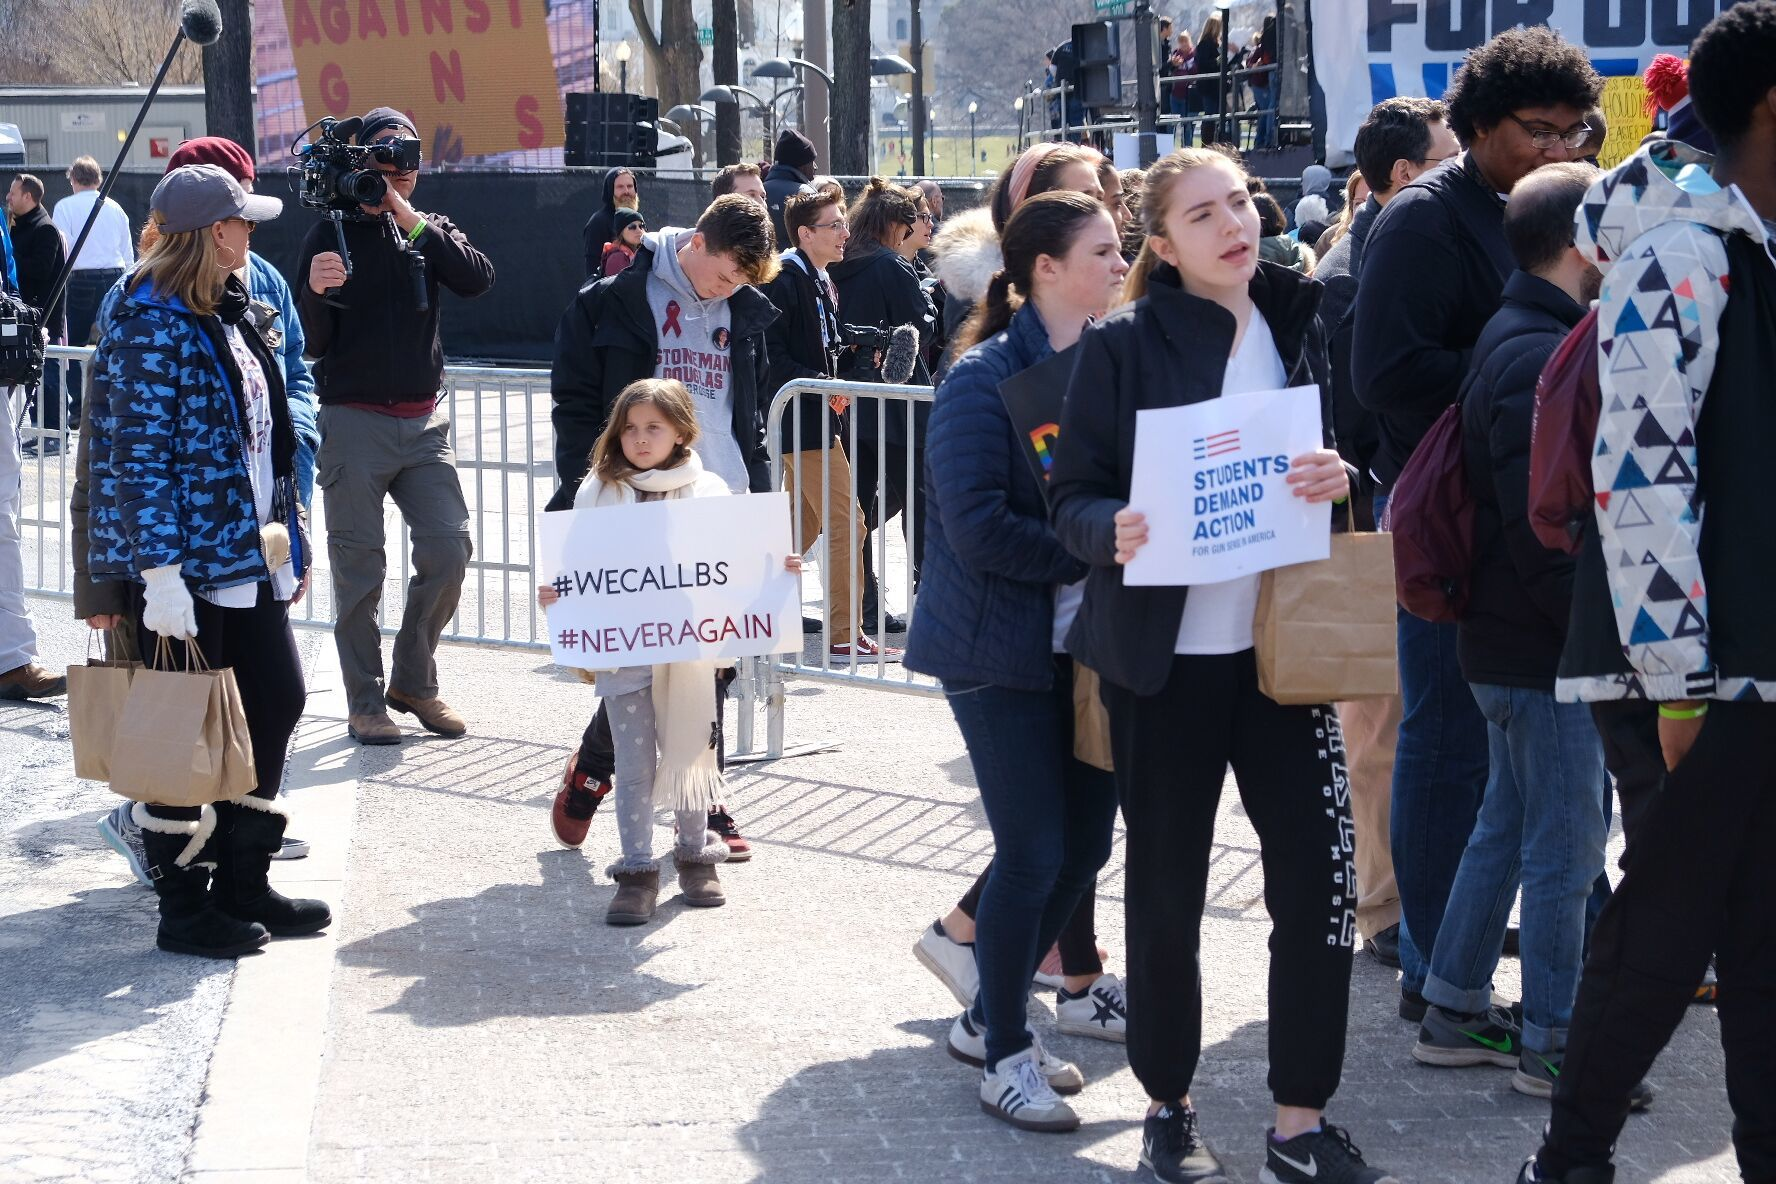 """Crowds at the March for Our Lives rally in D.C. (Courtesy Shannon Finney Photography/<a href=""""https://www.shannonfinneyphotography.com/index"""" target=""""_blank"""" rel=""""noopener noreferrer"""">shannonfinneyphotography.com</a>)"""